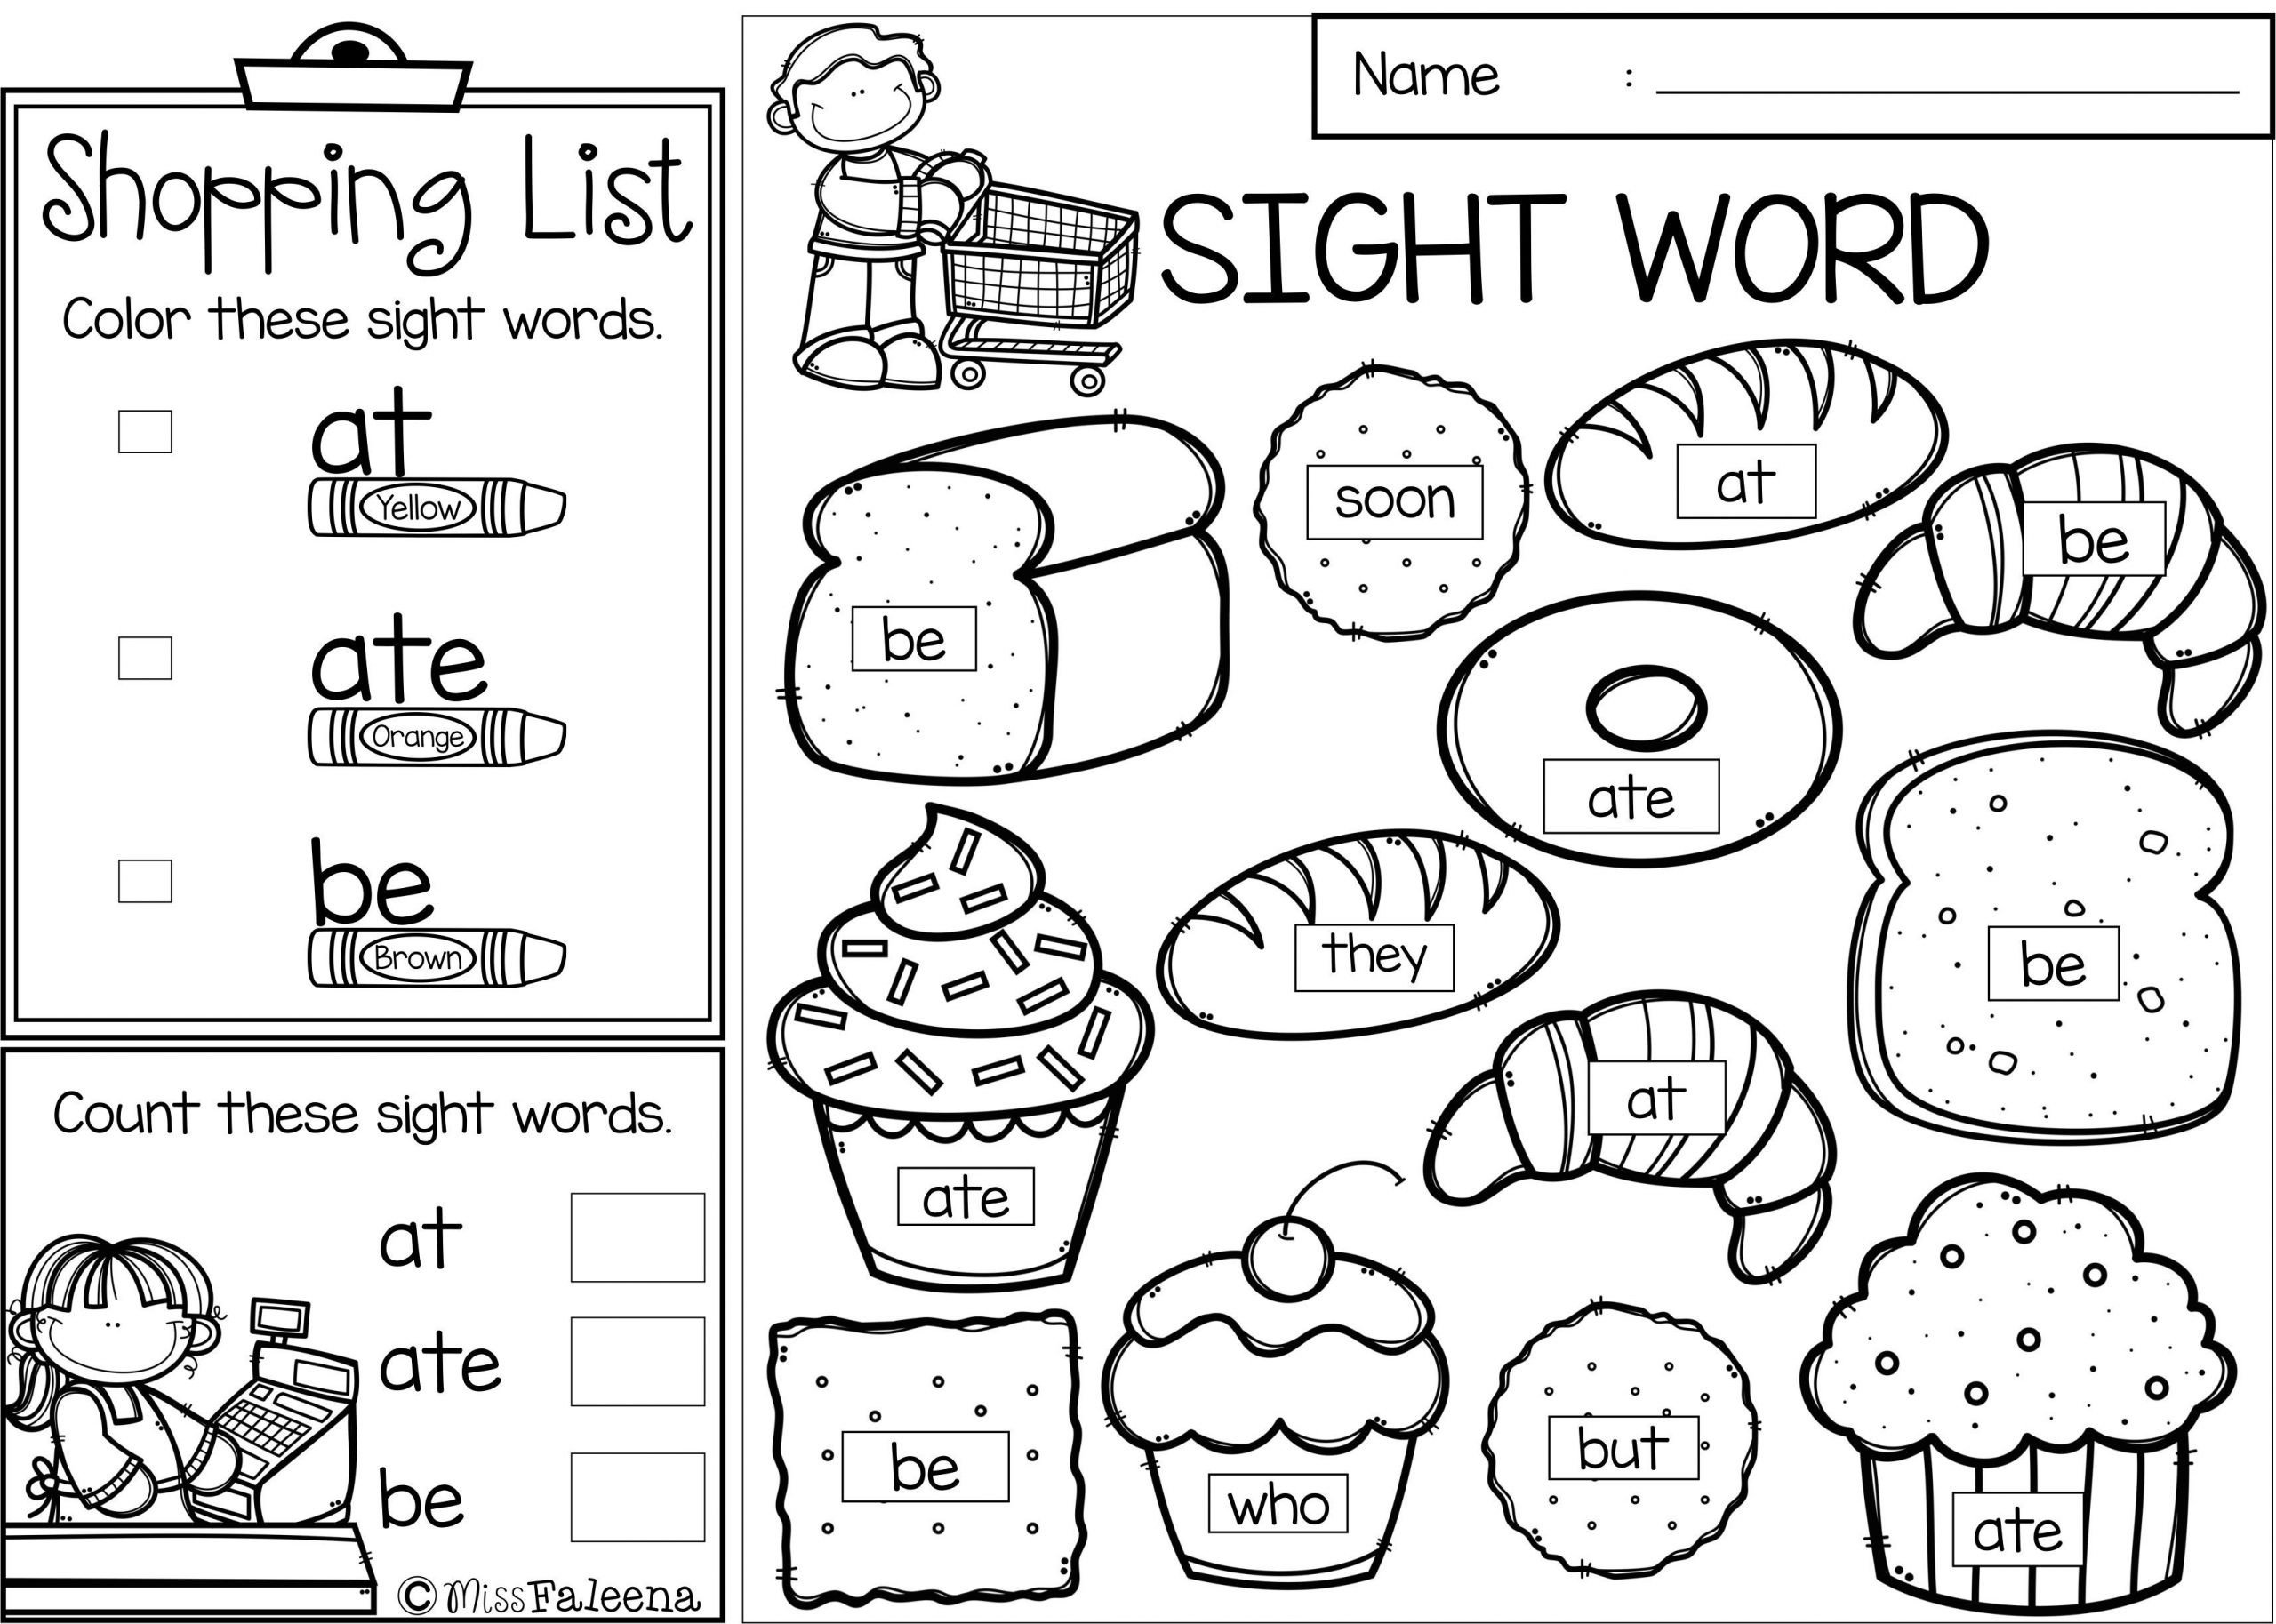 Color Word Worksheets Kindergarten Coloring Book Sight Word Coloringges Free for Kids 3rd